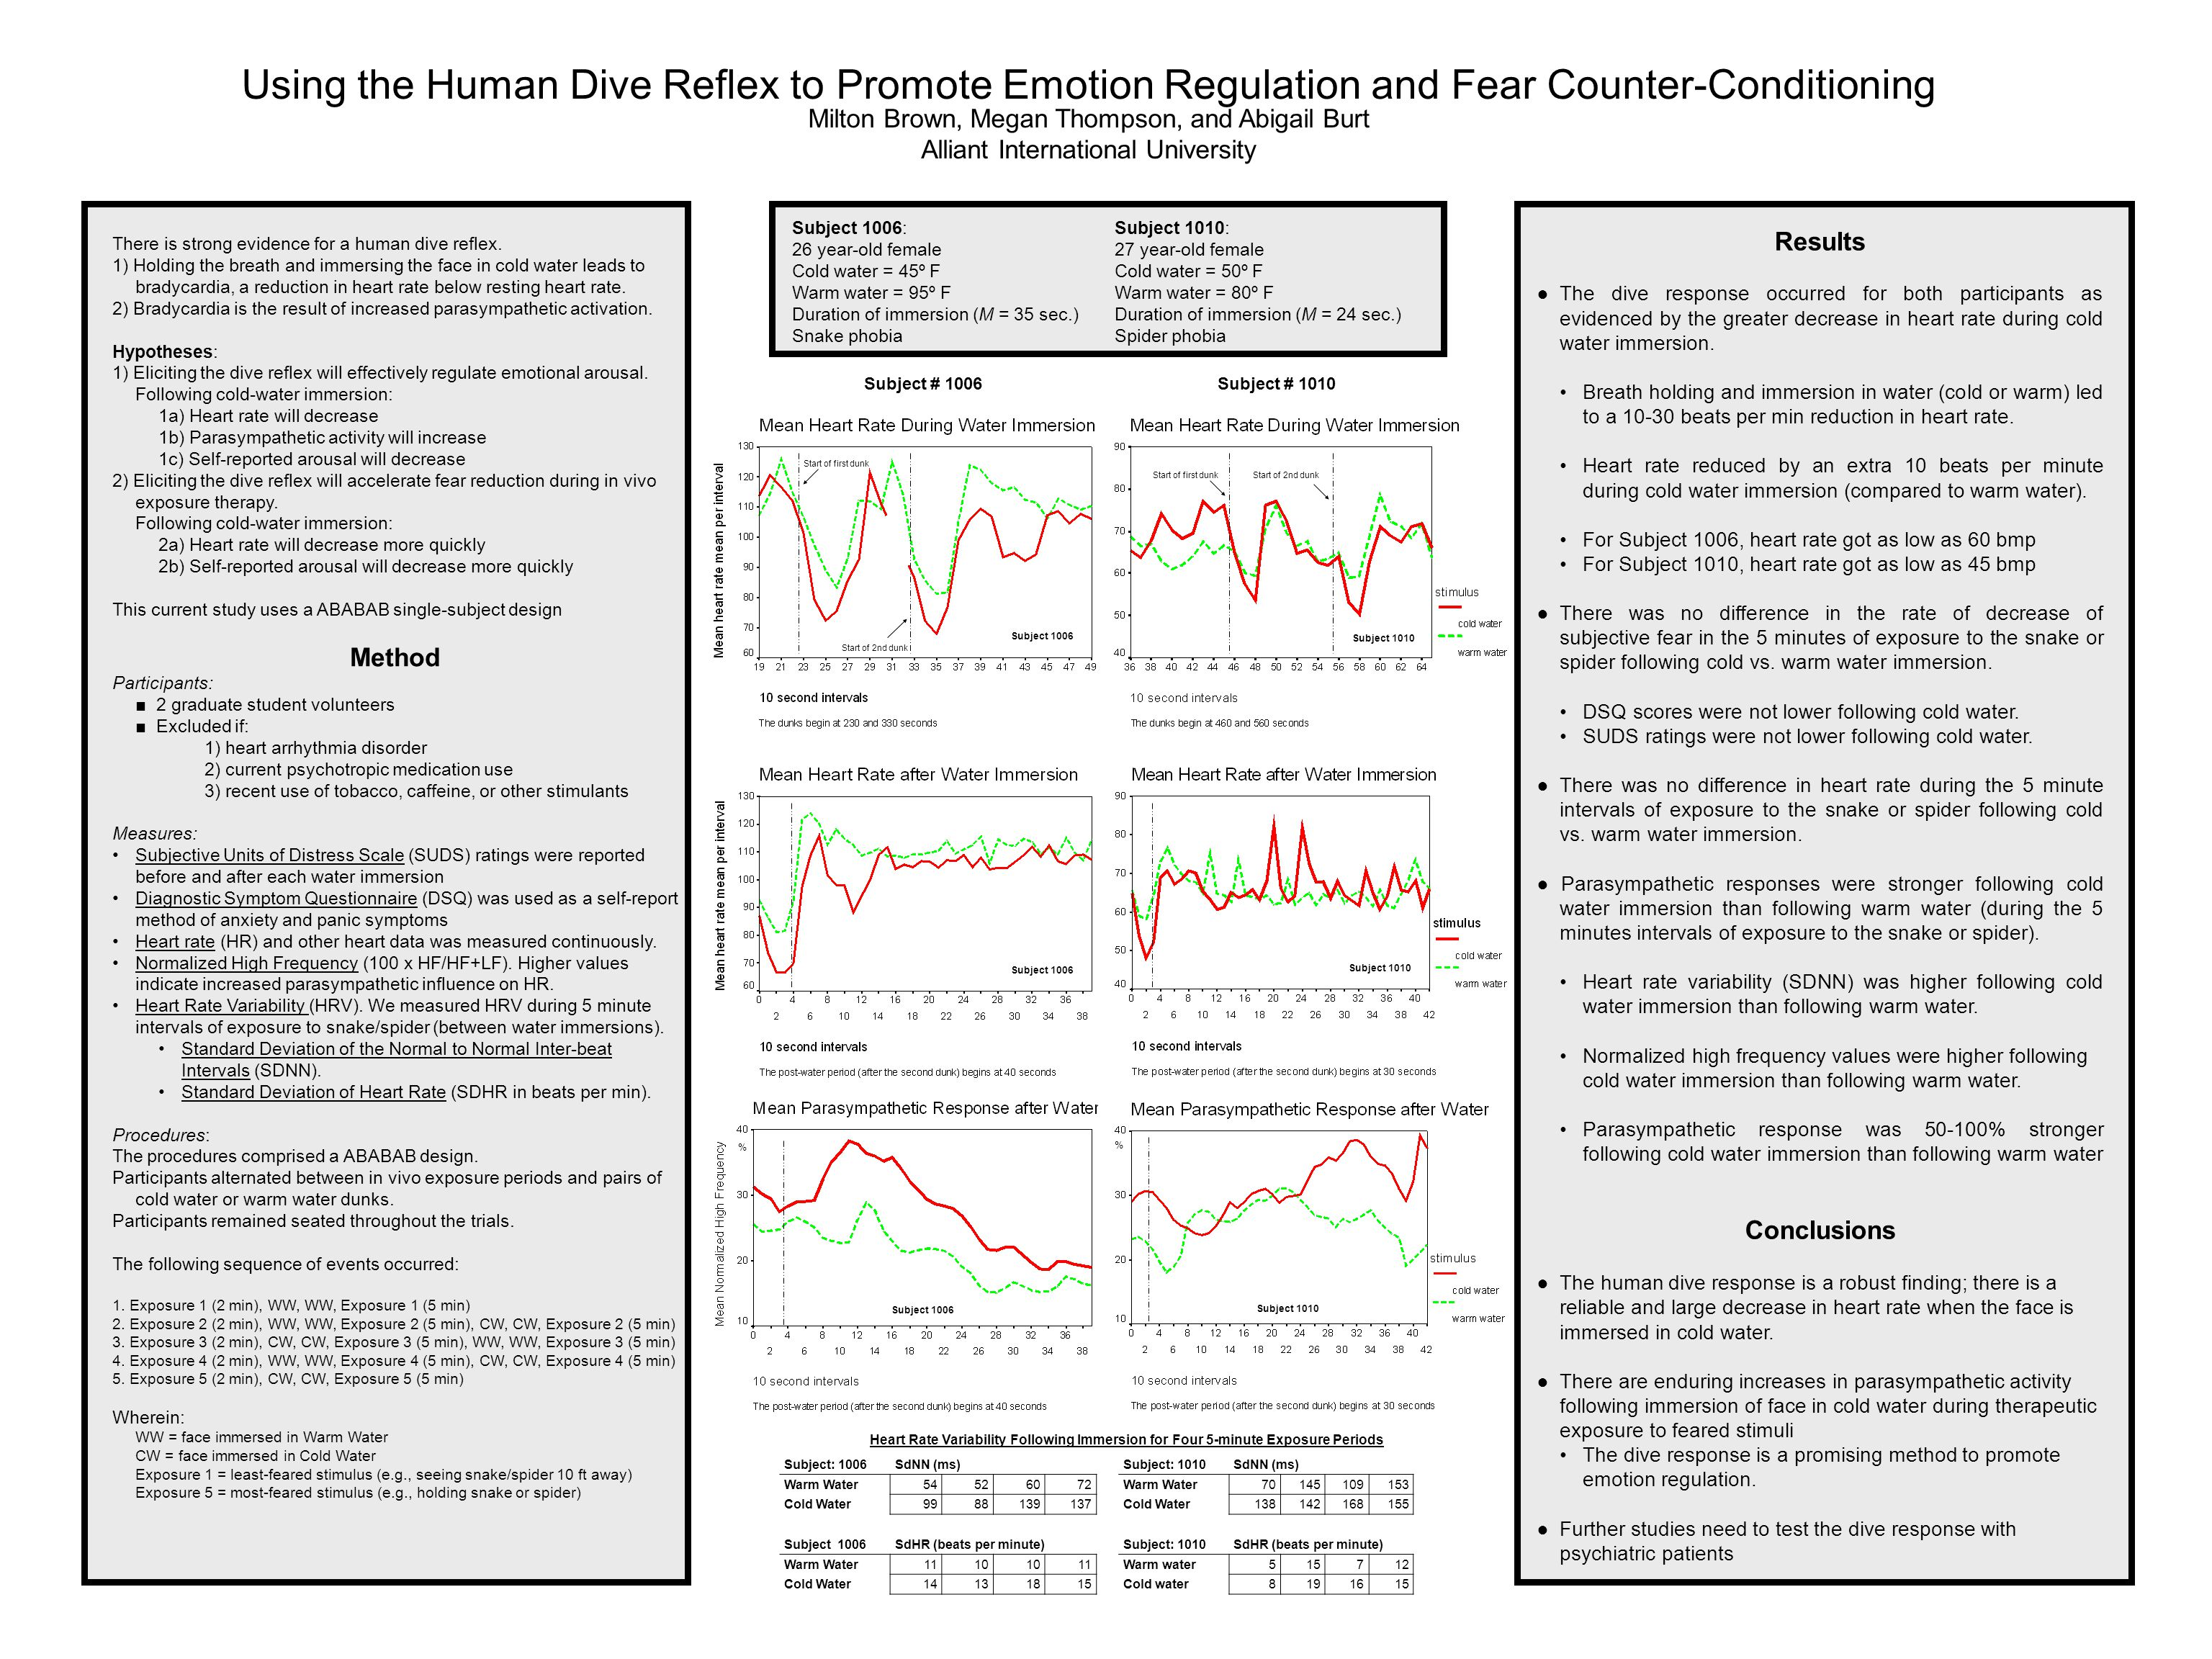 Using the Human Dive Reflex to Promote Emotion Regulation and Fear Counter-Conditioning Milton Brown, Megan Thompson, and Abigail Burt Alliant Interna